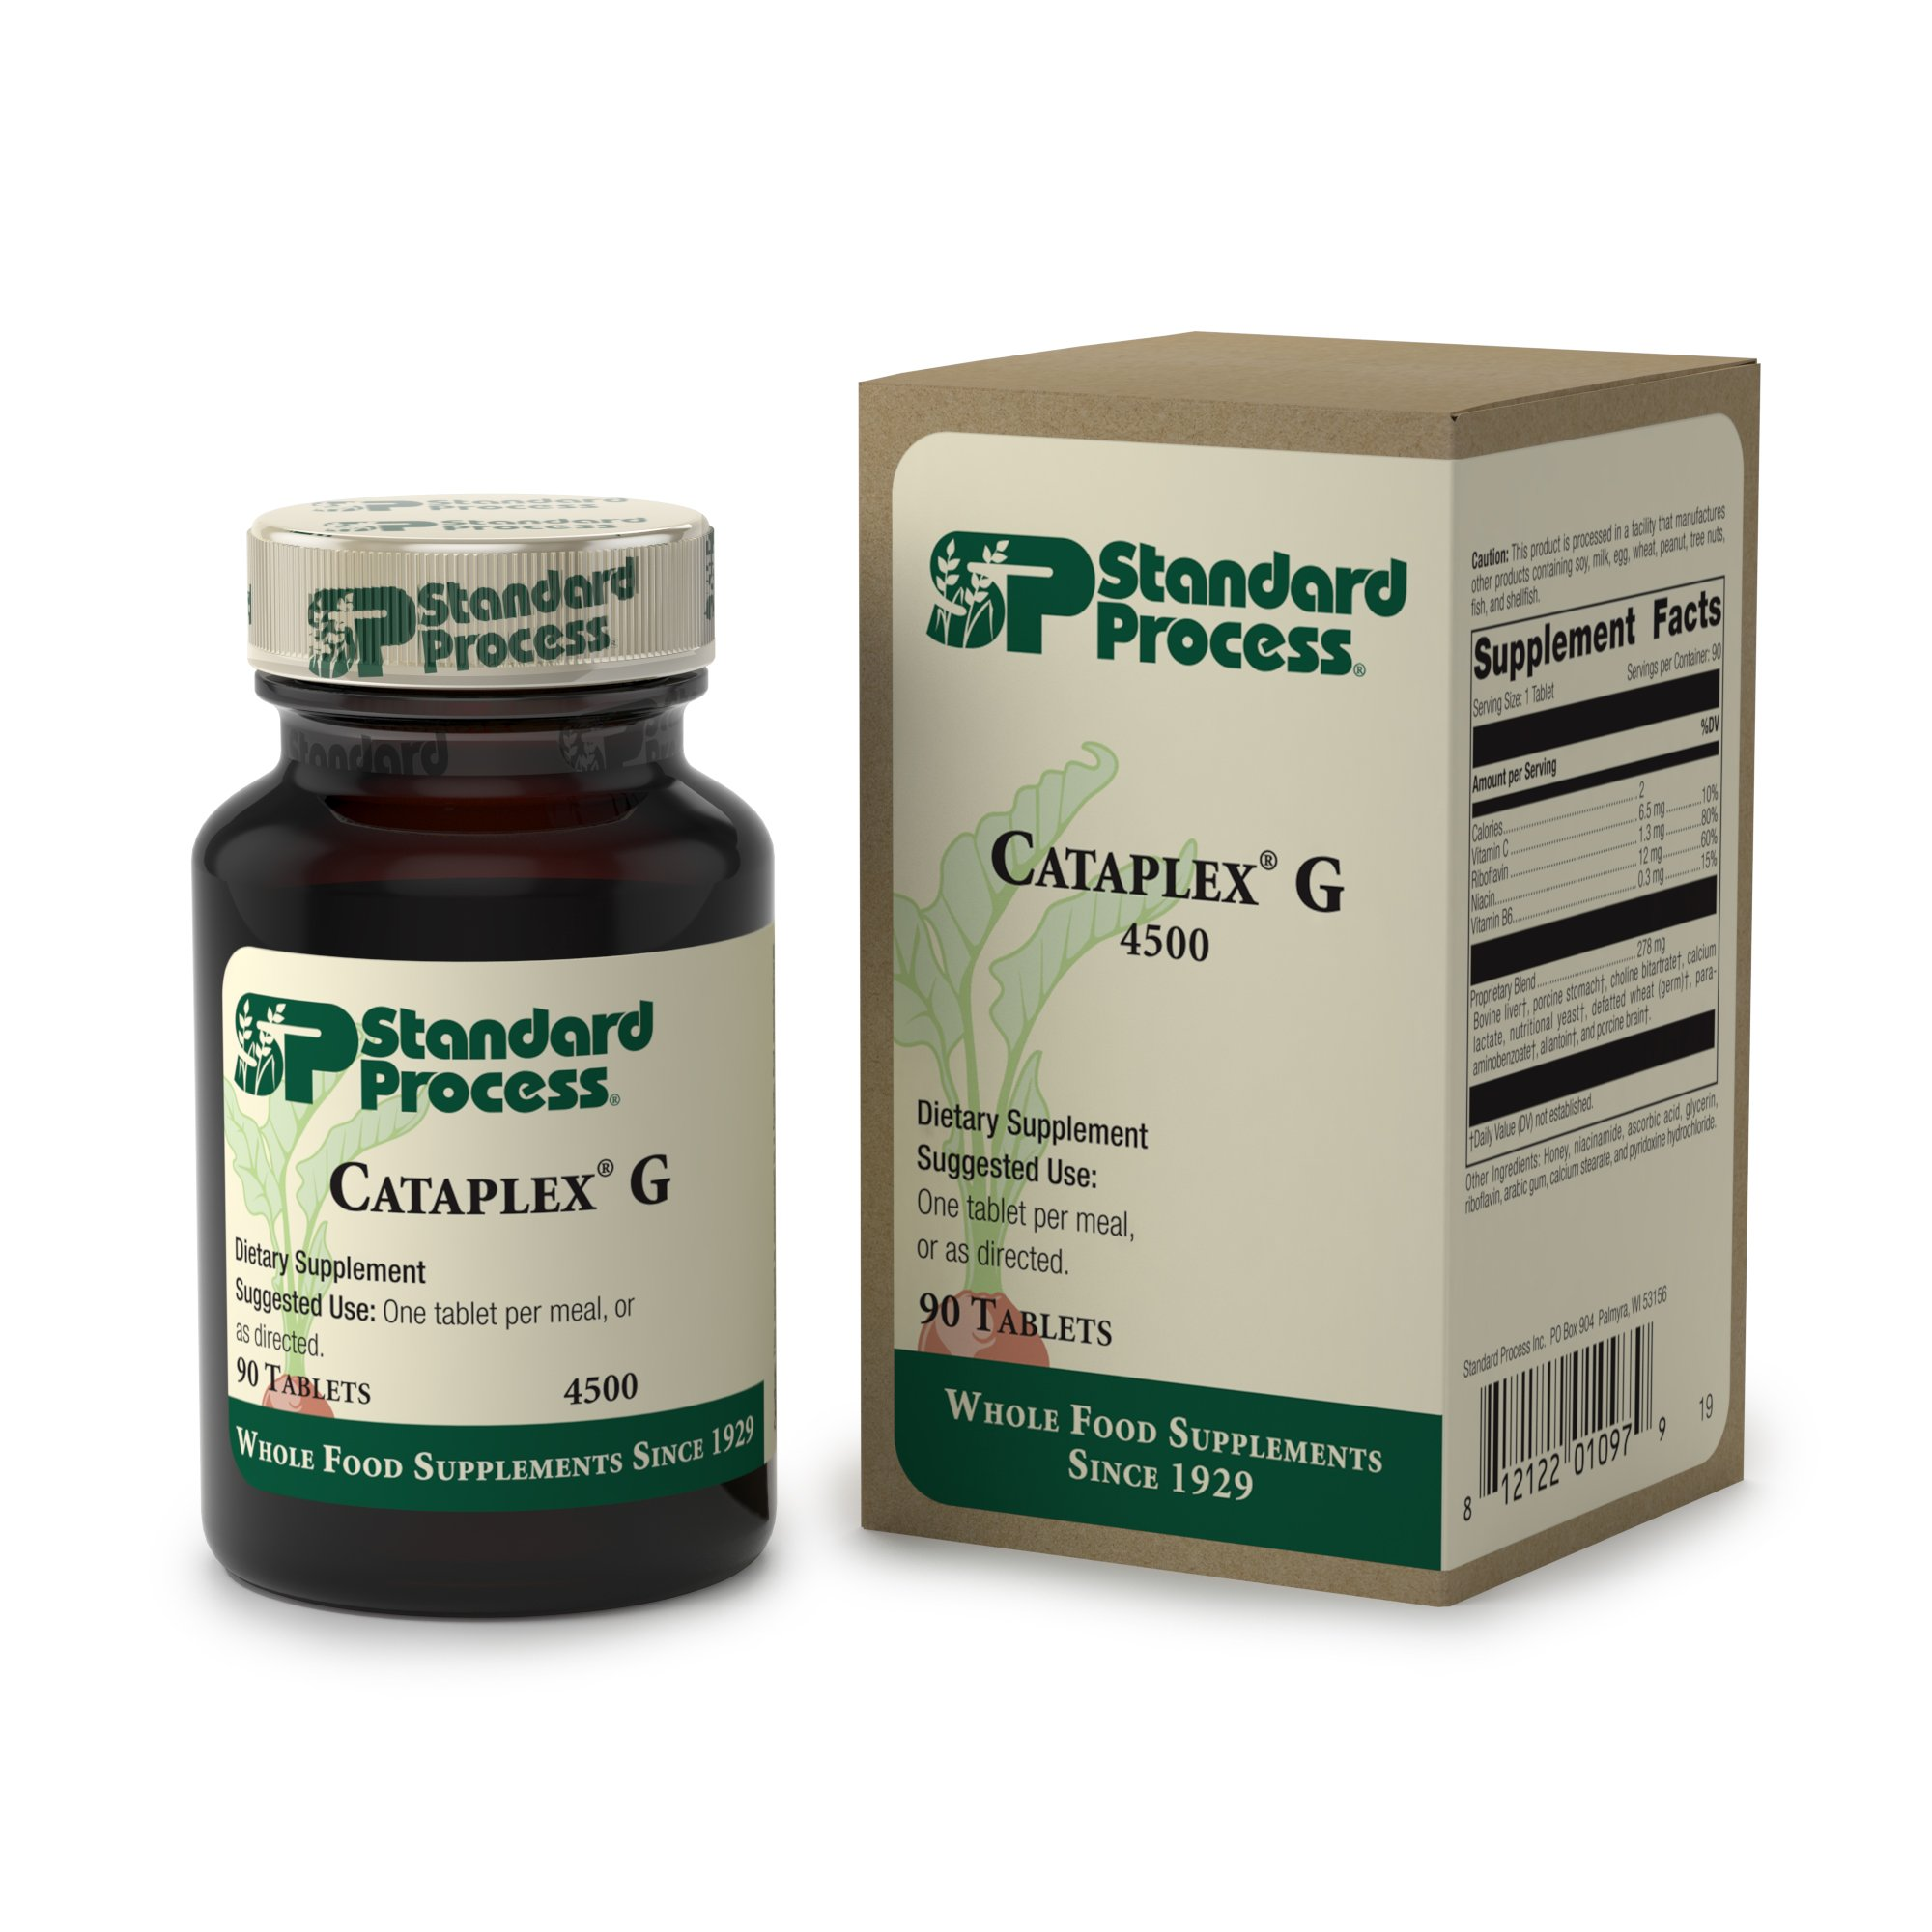 Standard Process - Cataplex G - Supports Brain and Nervous System Function, Liver and Metabolism, Provides Antioxidant Vitamin C, Riboflavin, Niacin, Vitamin B6-90 Tablets